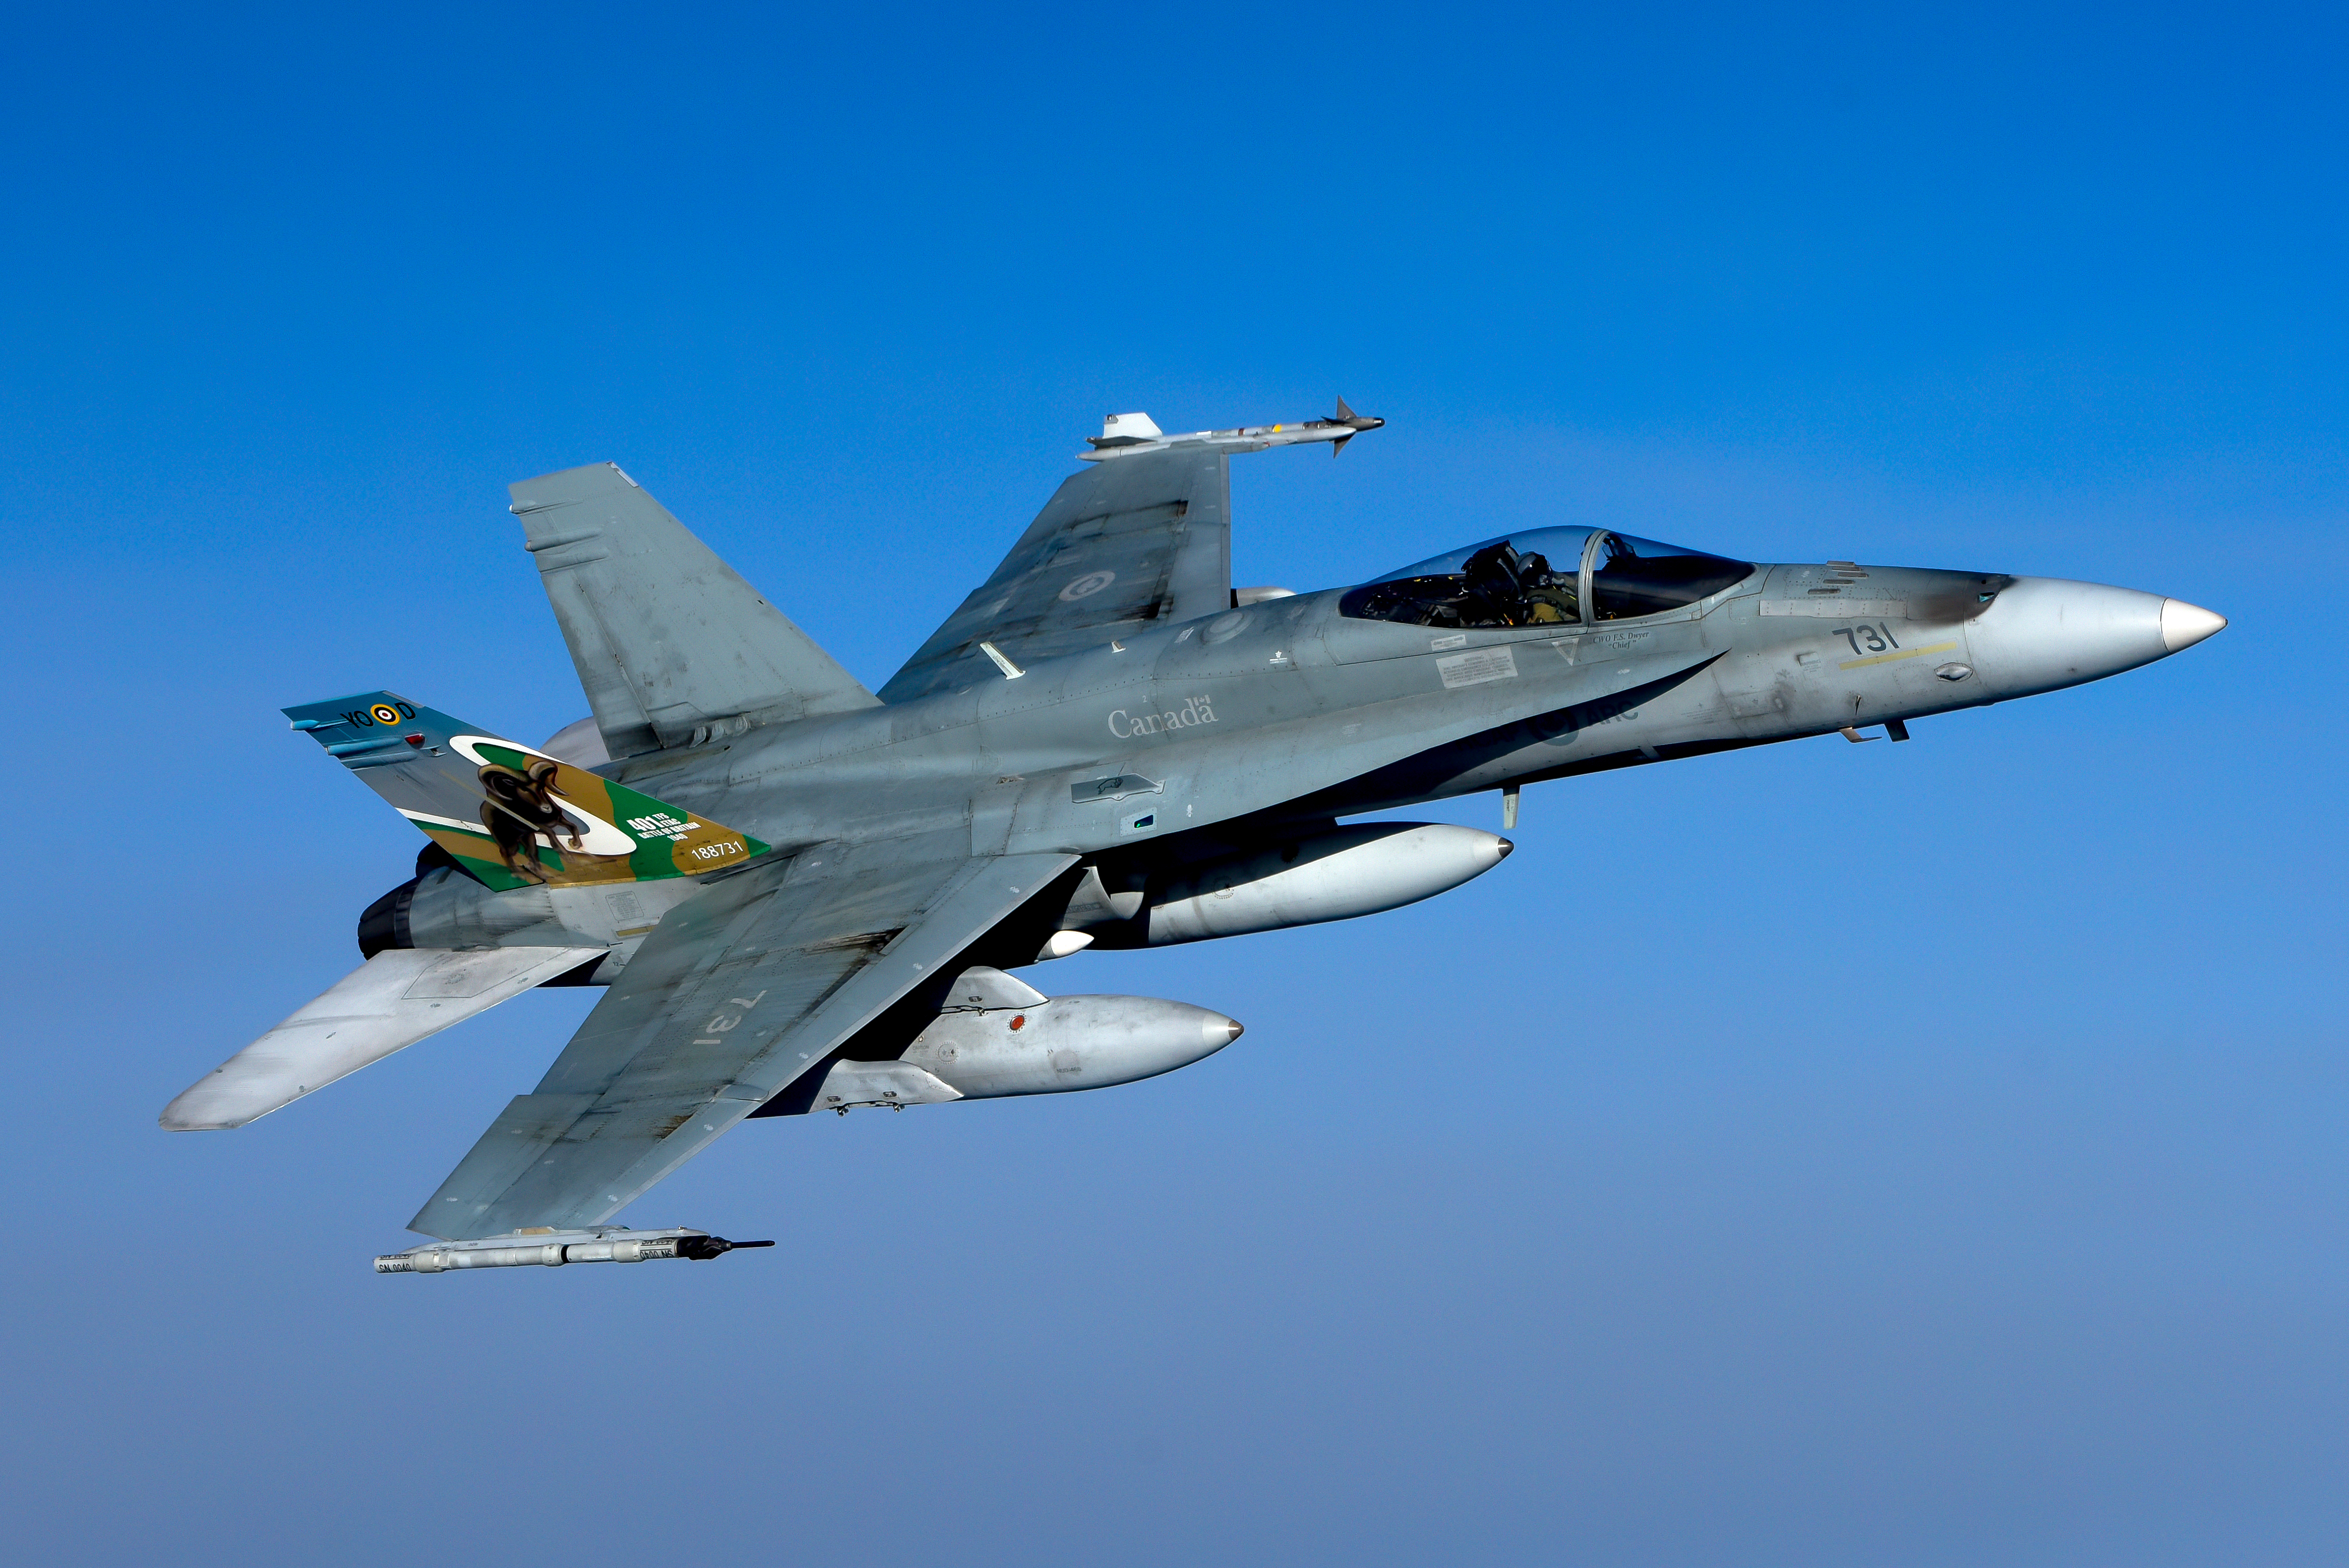 the RCAF has admitted it has less than two-thirds the number of CF-188 pilots needed to meet the government's requirements